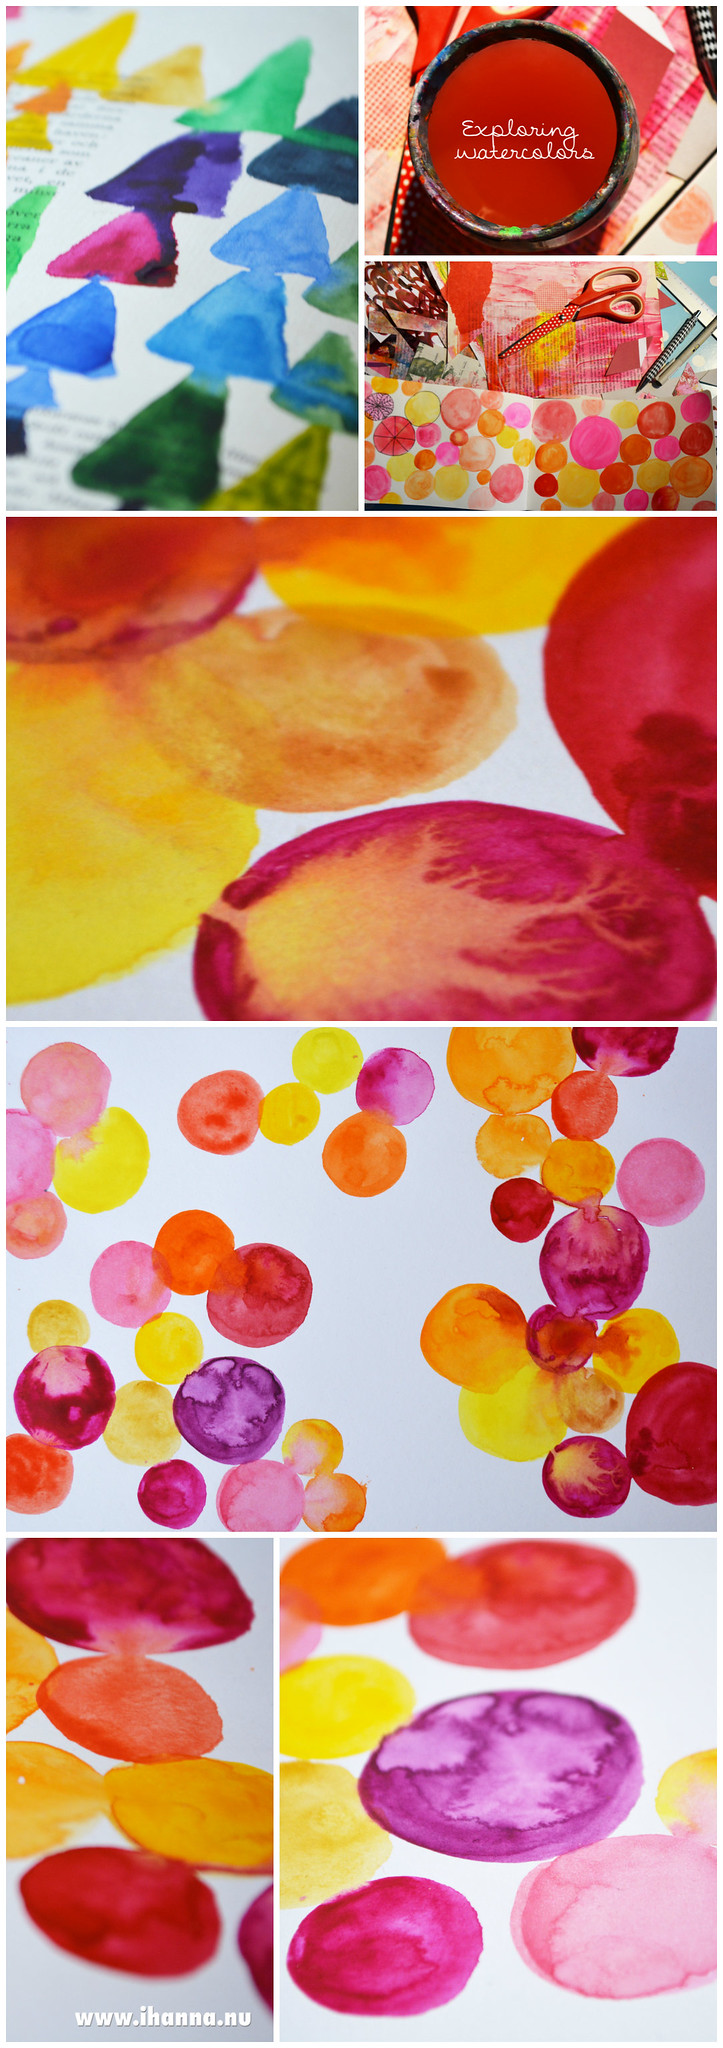 My Watercolor Explorations painted by artist Hanna Andersson a.k.a. @ihanna - Sweden #watercolours